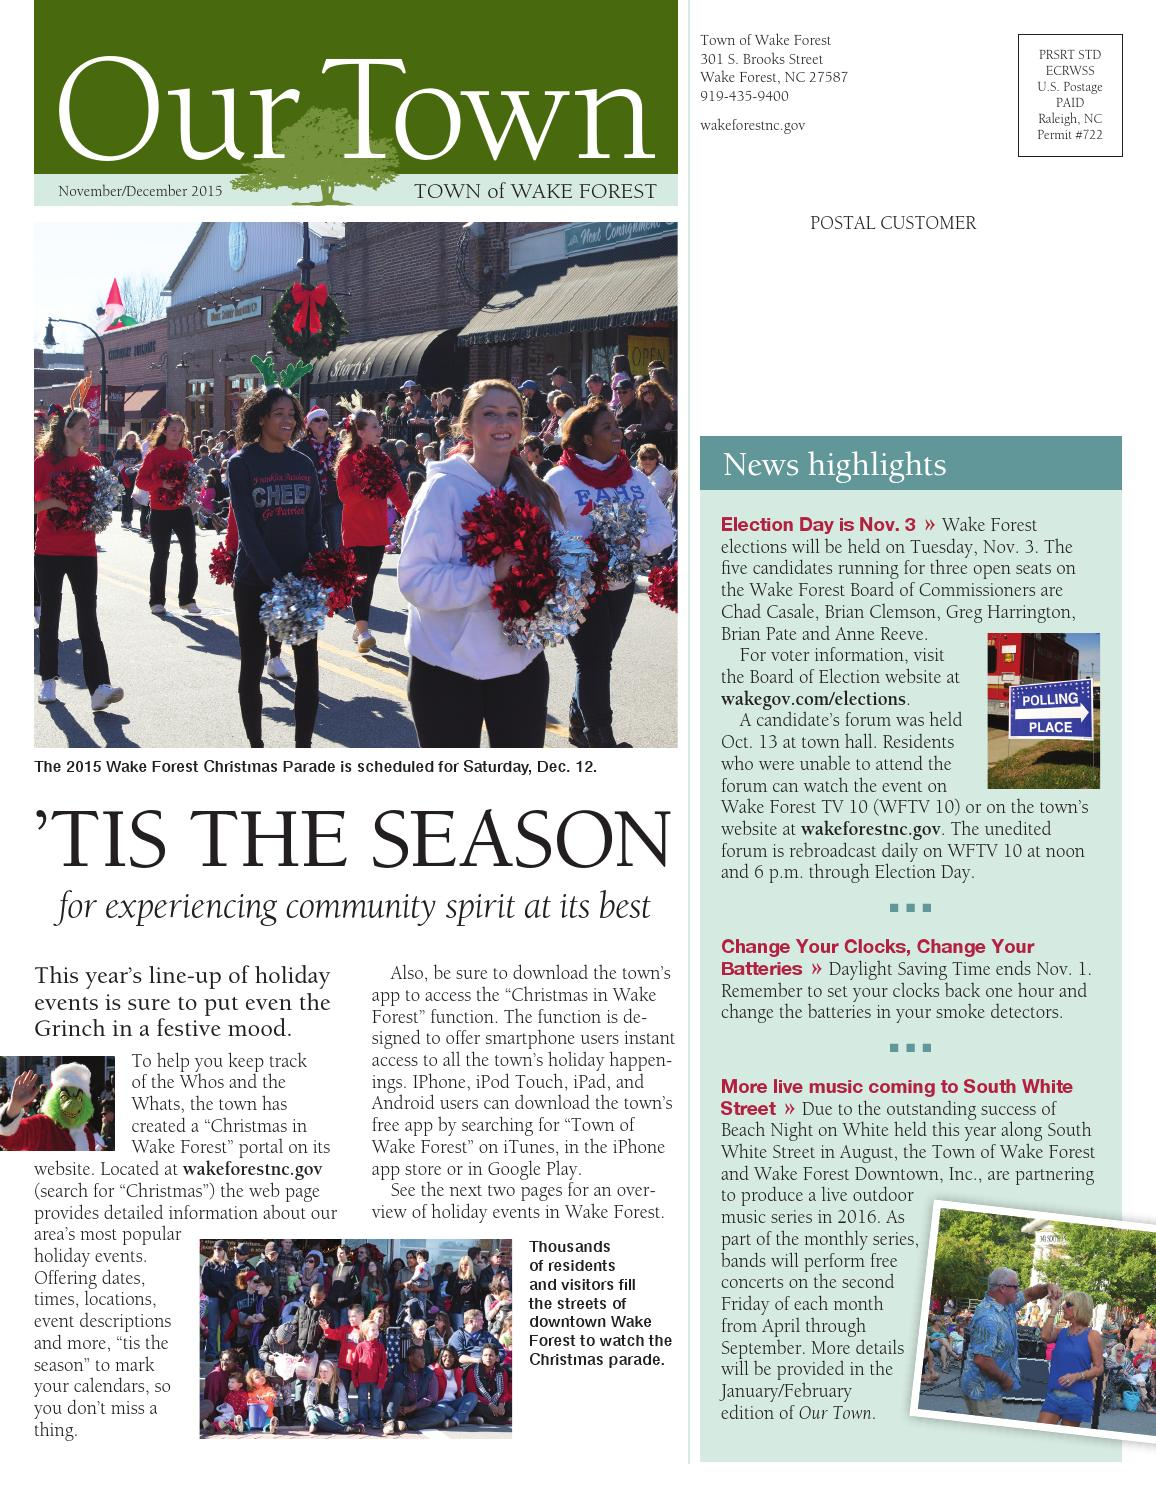 Our Town: Nov/Dec 2015 by Town of Wake Forest - issuu